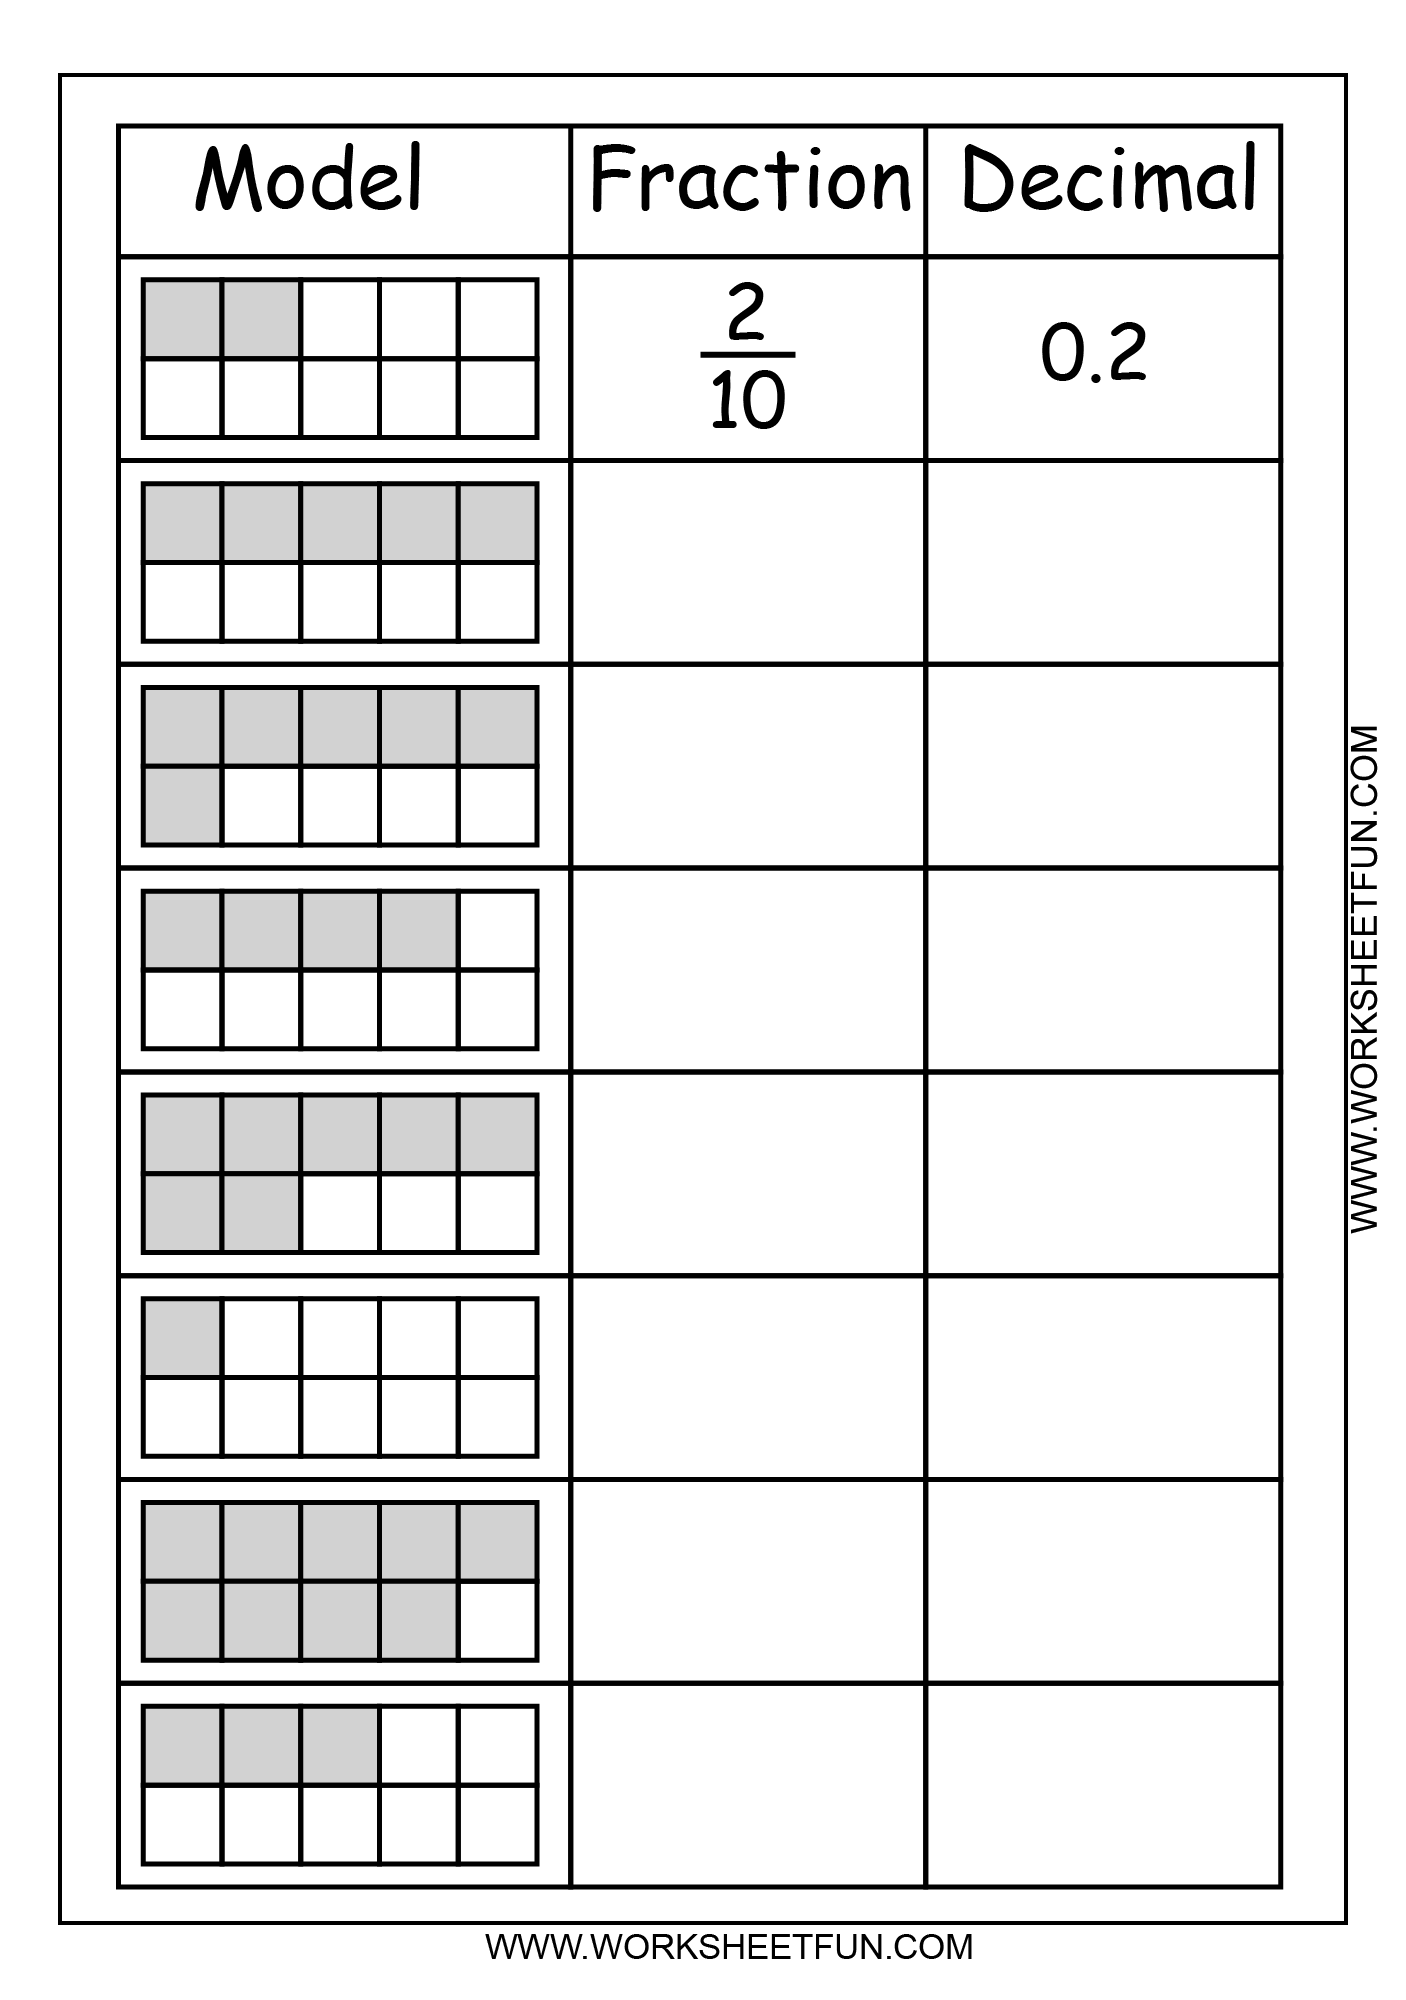 Worksheet Fraction And Decimal Worksheets 1000 images about decimal worksheets on pinterest models kid and adding decimals